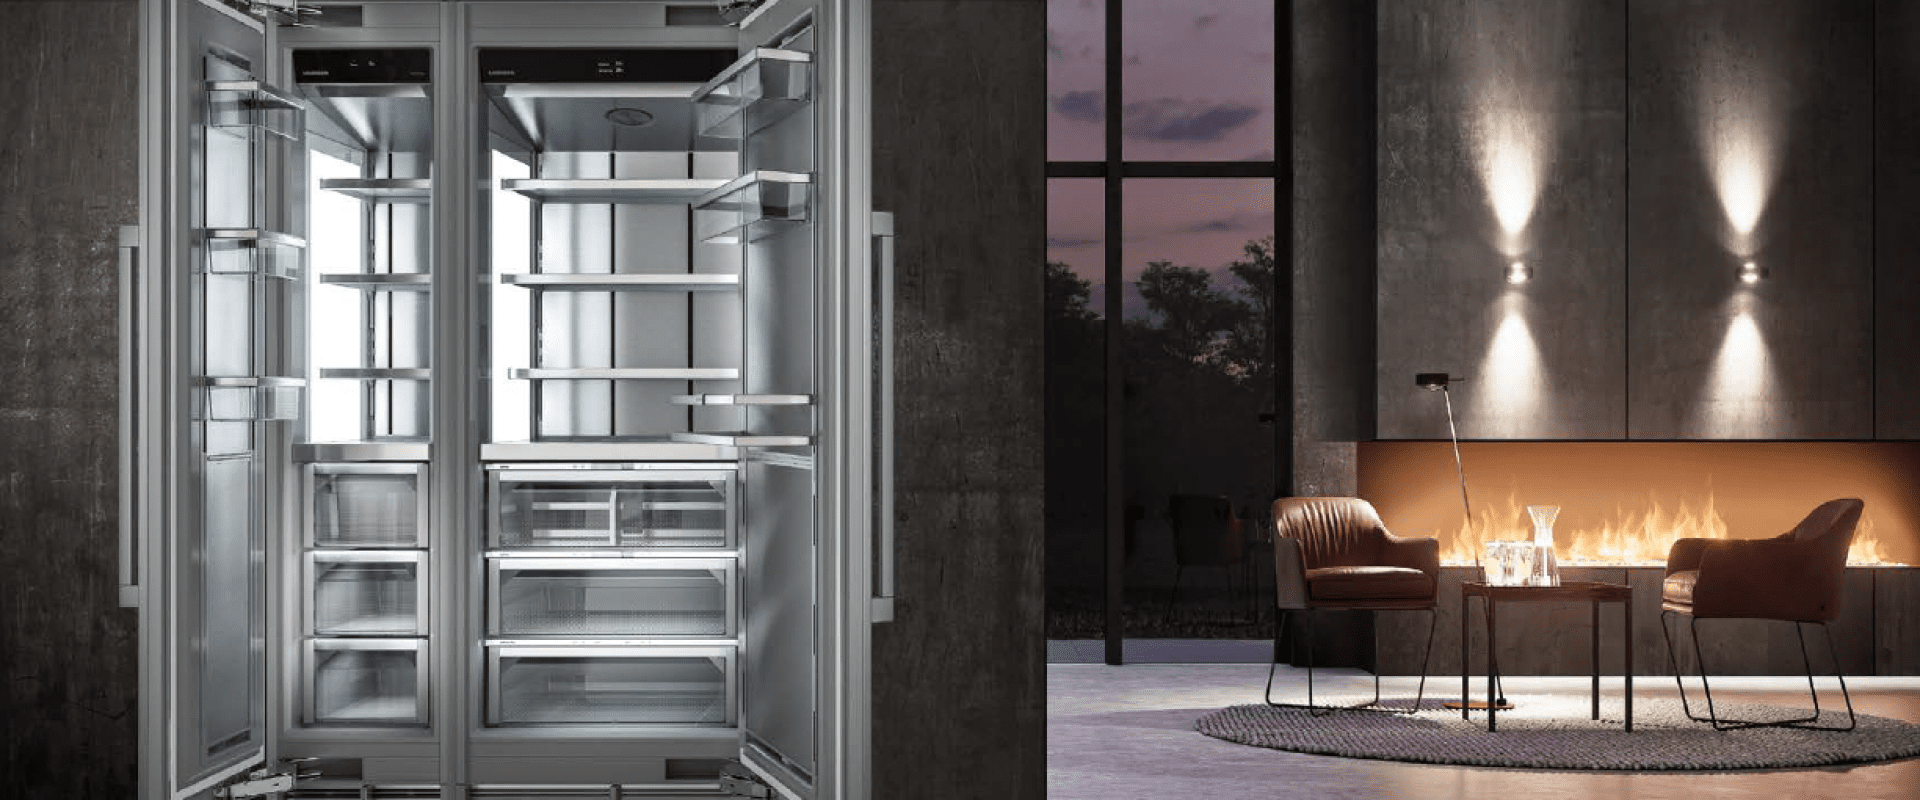 5290Liebherr Showcases Monolith Towers and New Undercounter Refrigeration Units at 2018 Architectural Digest Design Show